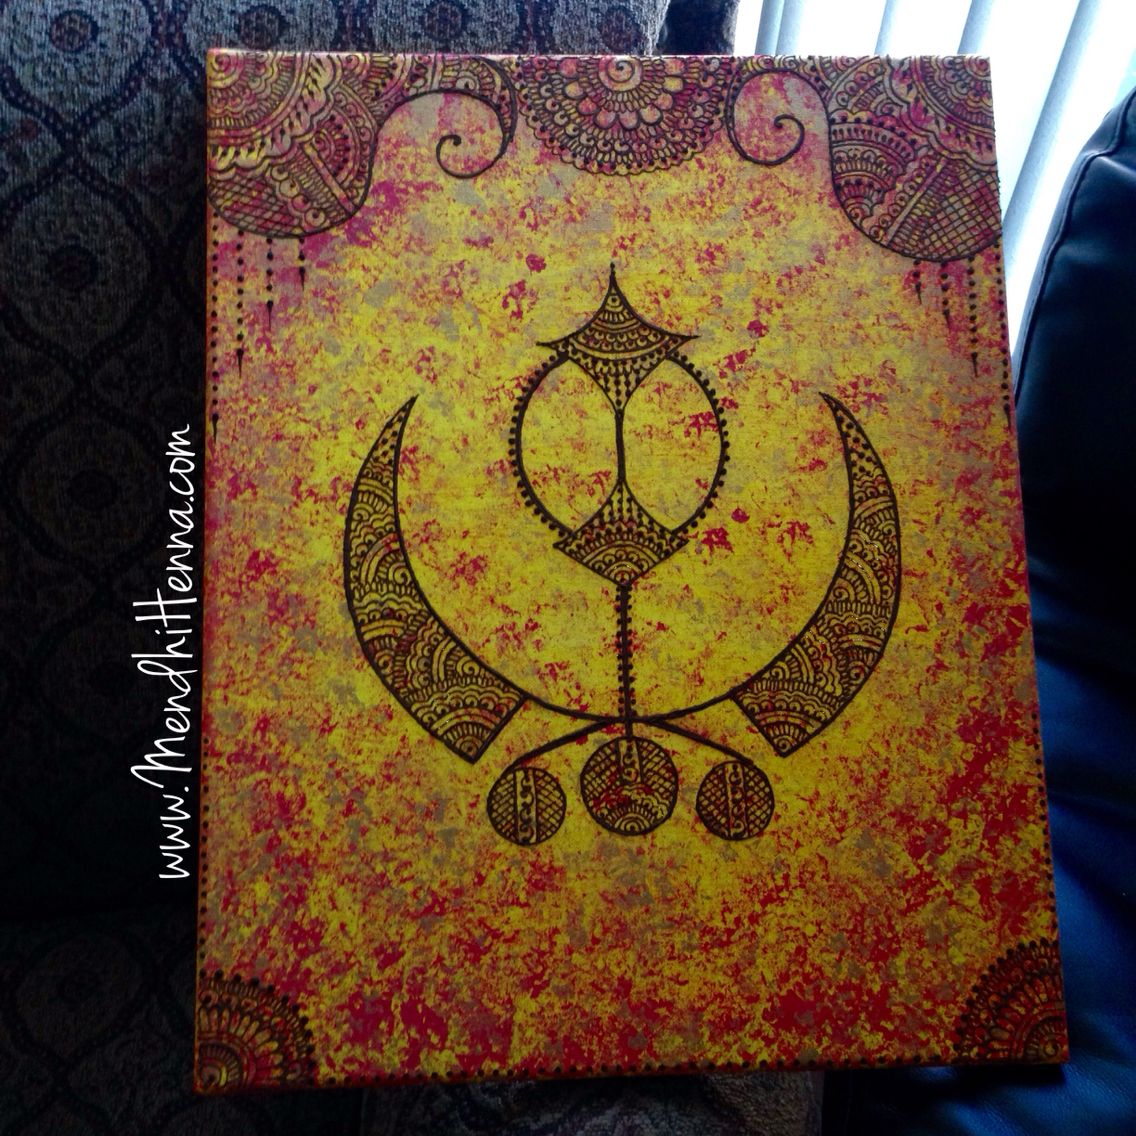 16x20 henna canvas wall decor www.MendhiHenna.com Instagram ...